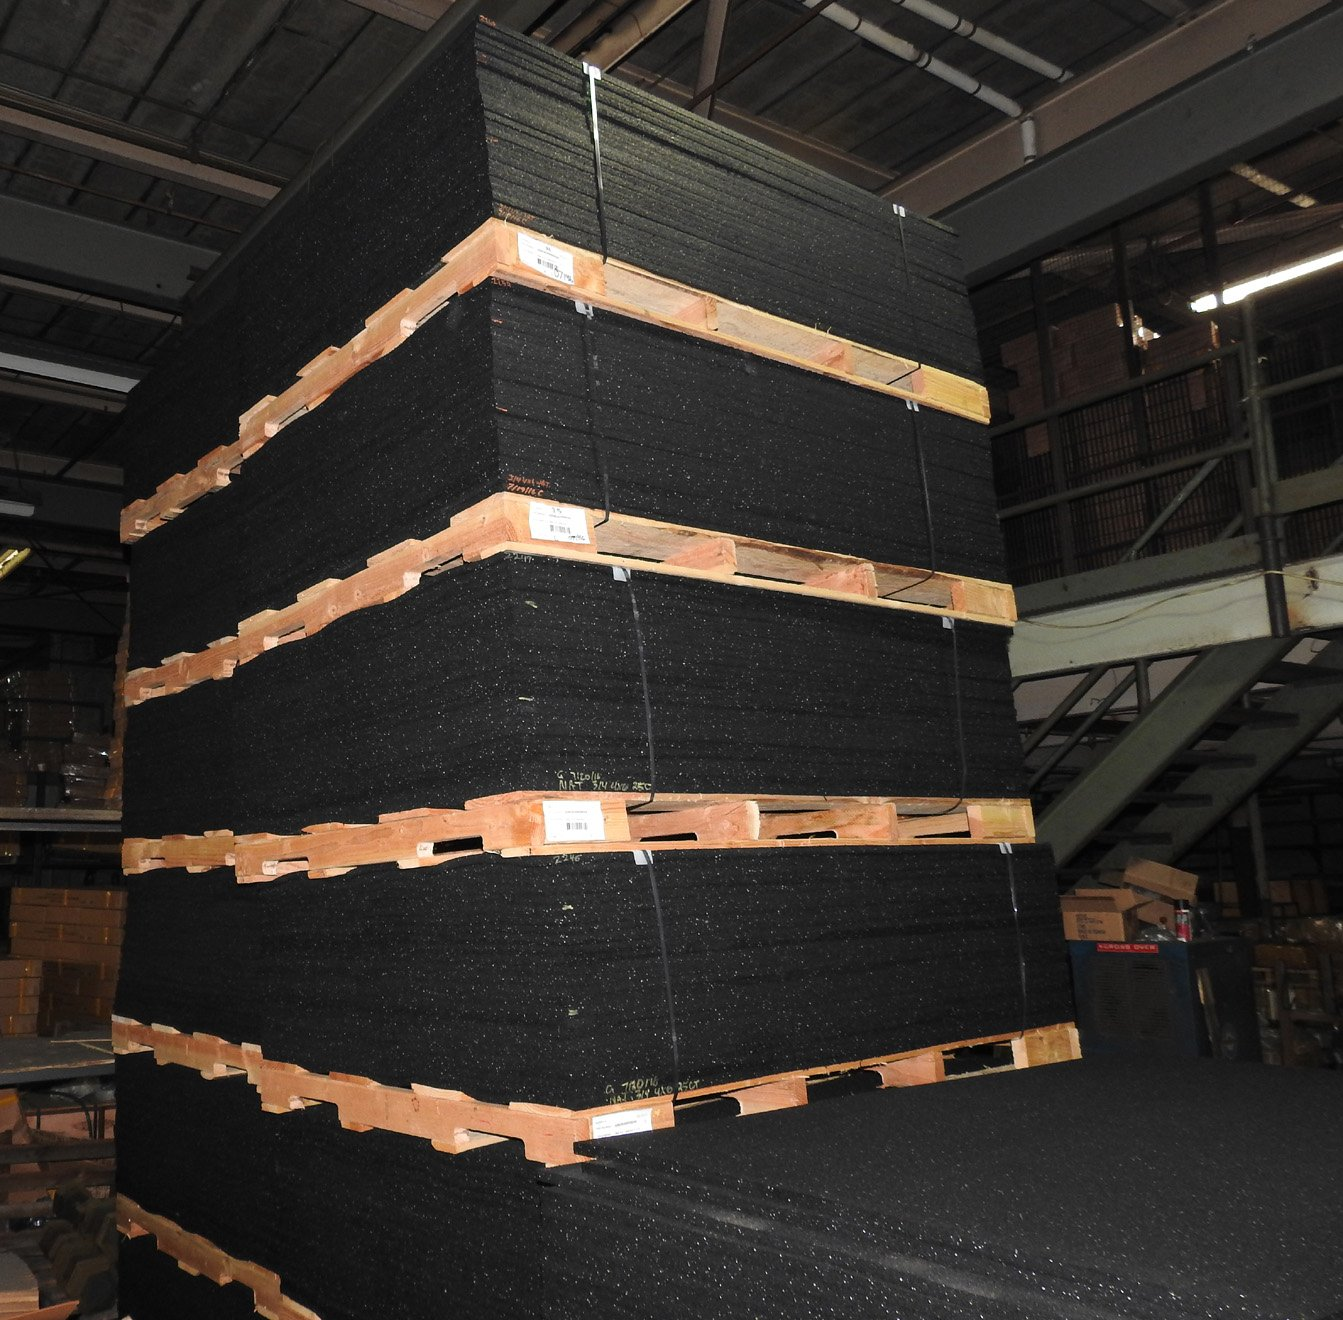 American Made Thick Rubber Gym Flooring 3//4 Thick 48 x 72 Weighs 90 lbs.